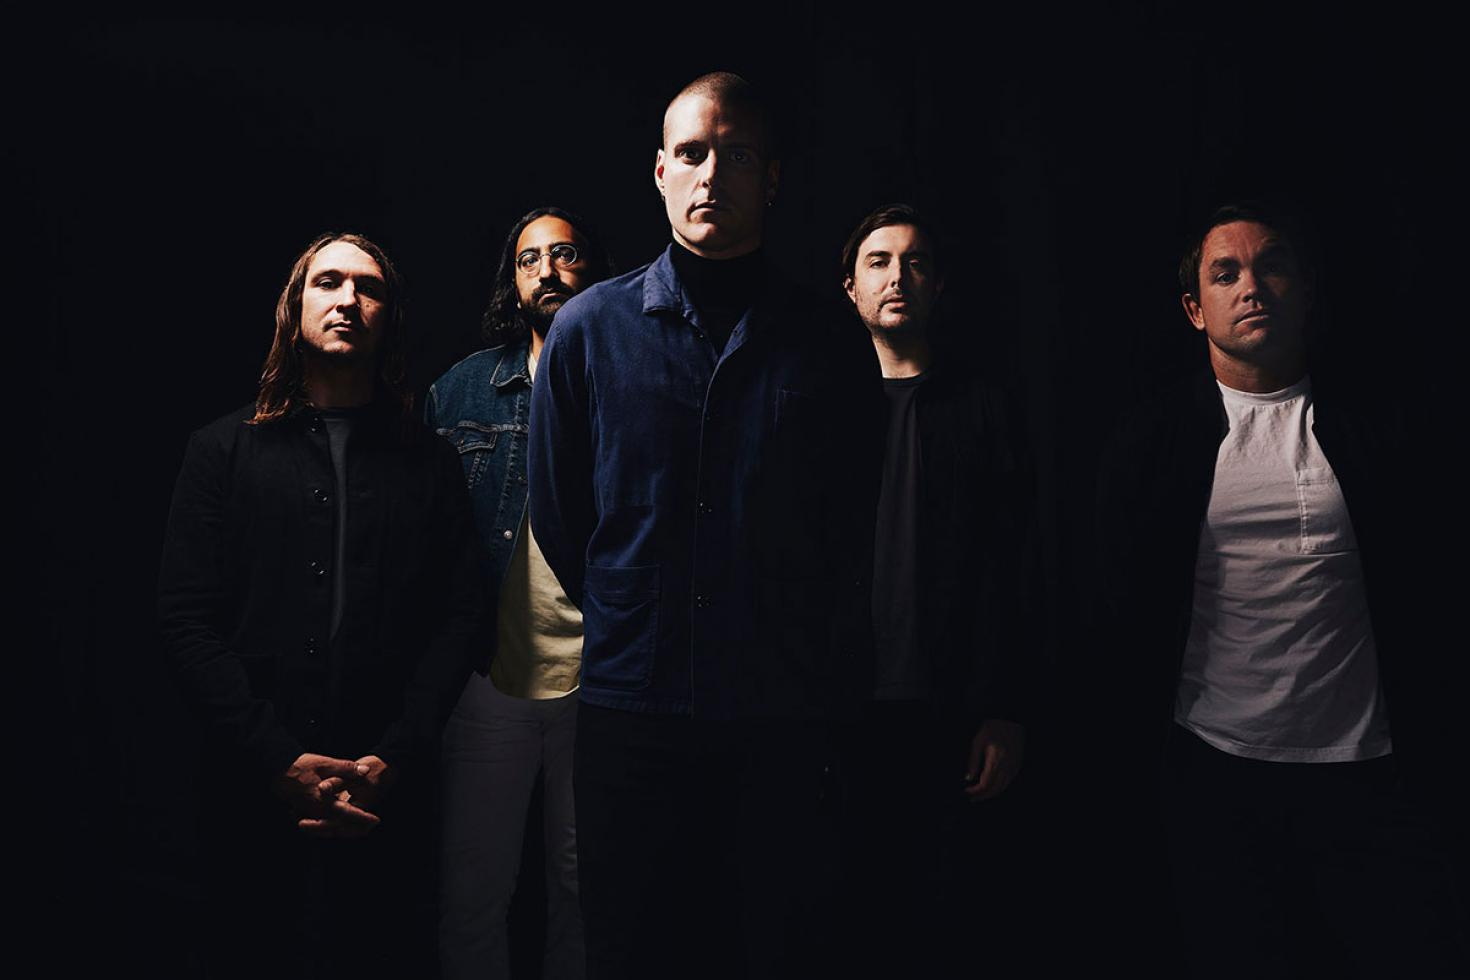 Deafheaven release new song 'The Gnashing'